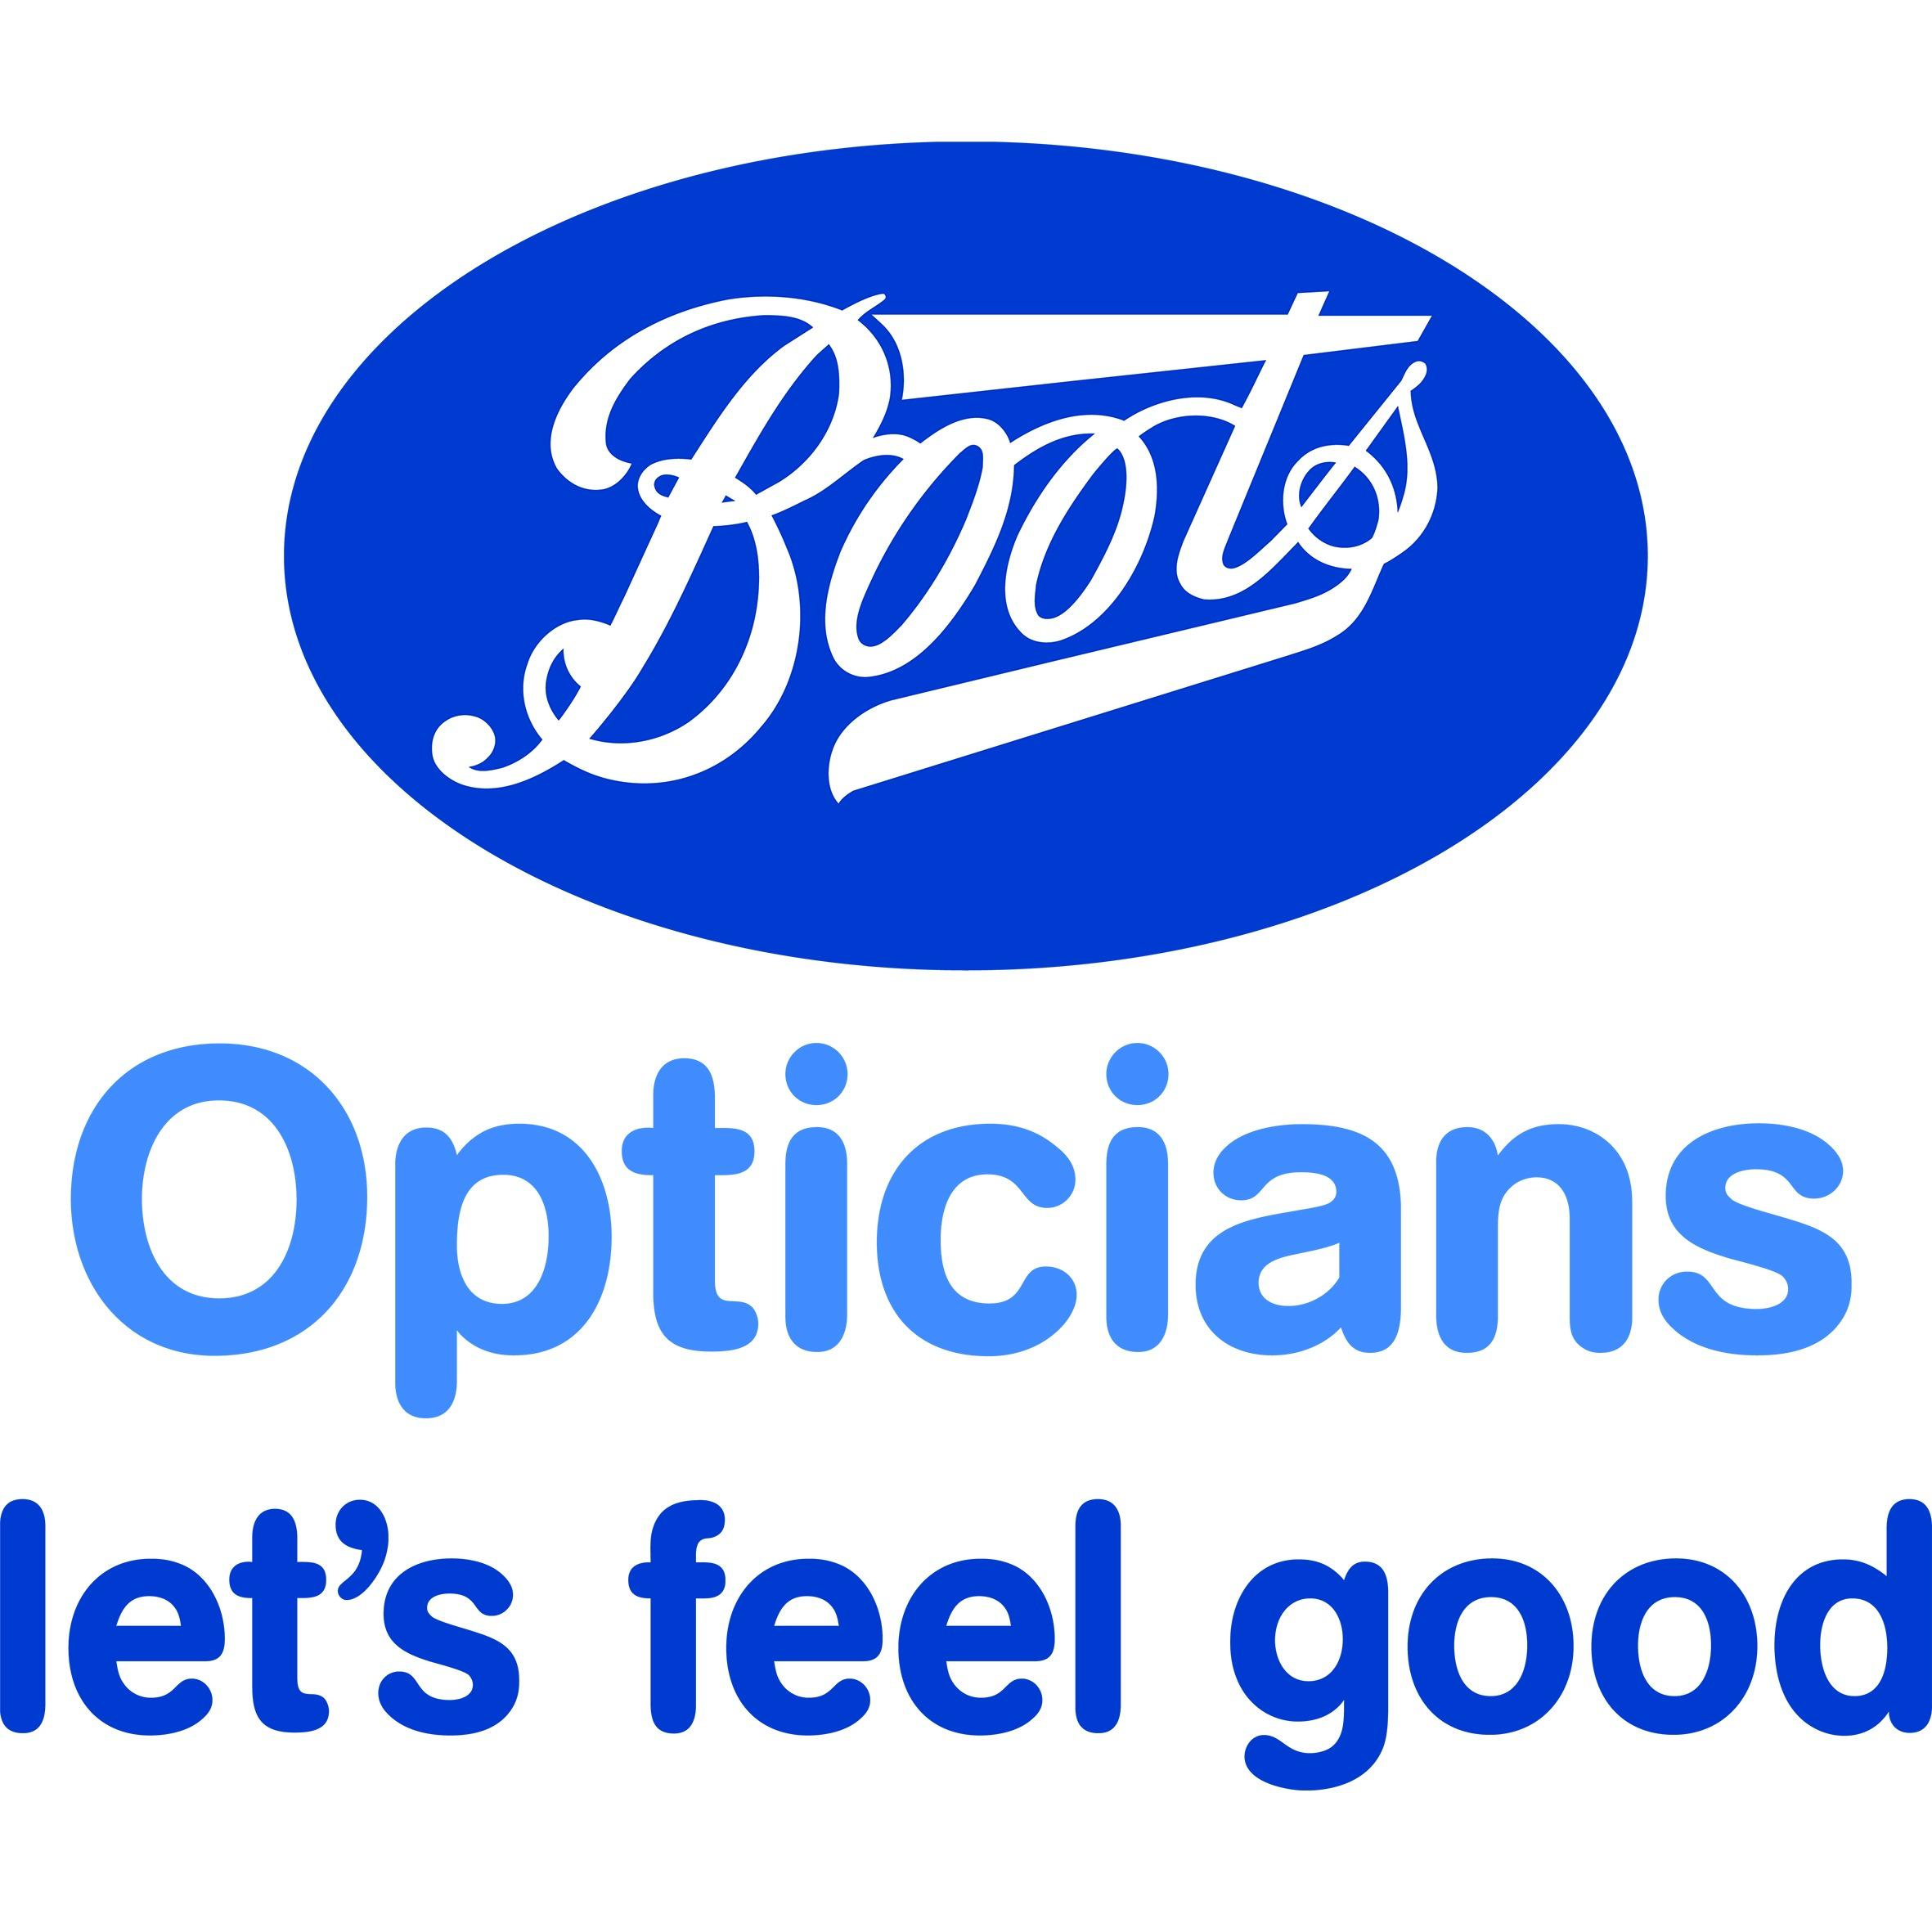 Boots Opticians - Hanley, Staffordshire ST1 1PZ - 03451 253776 | ShowMeLocal.com